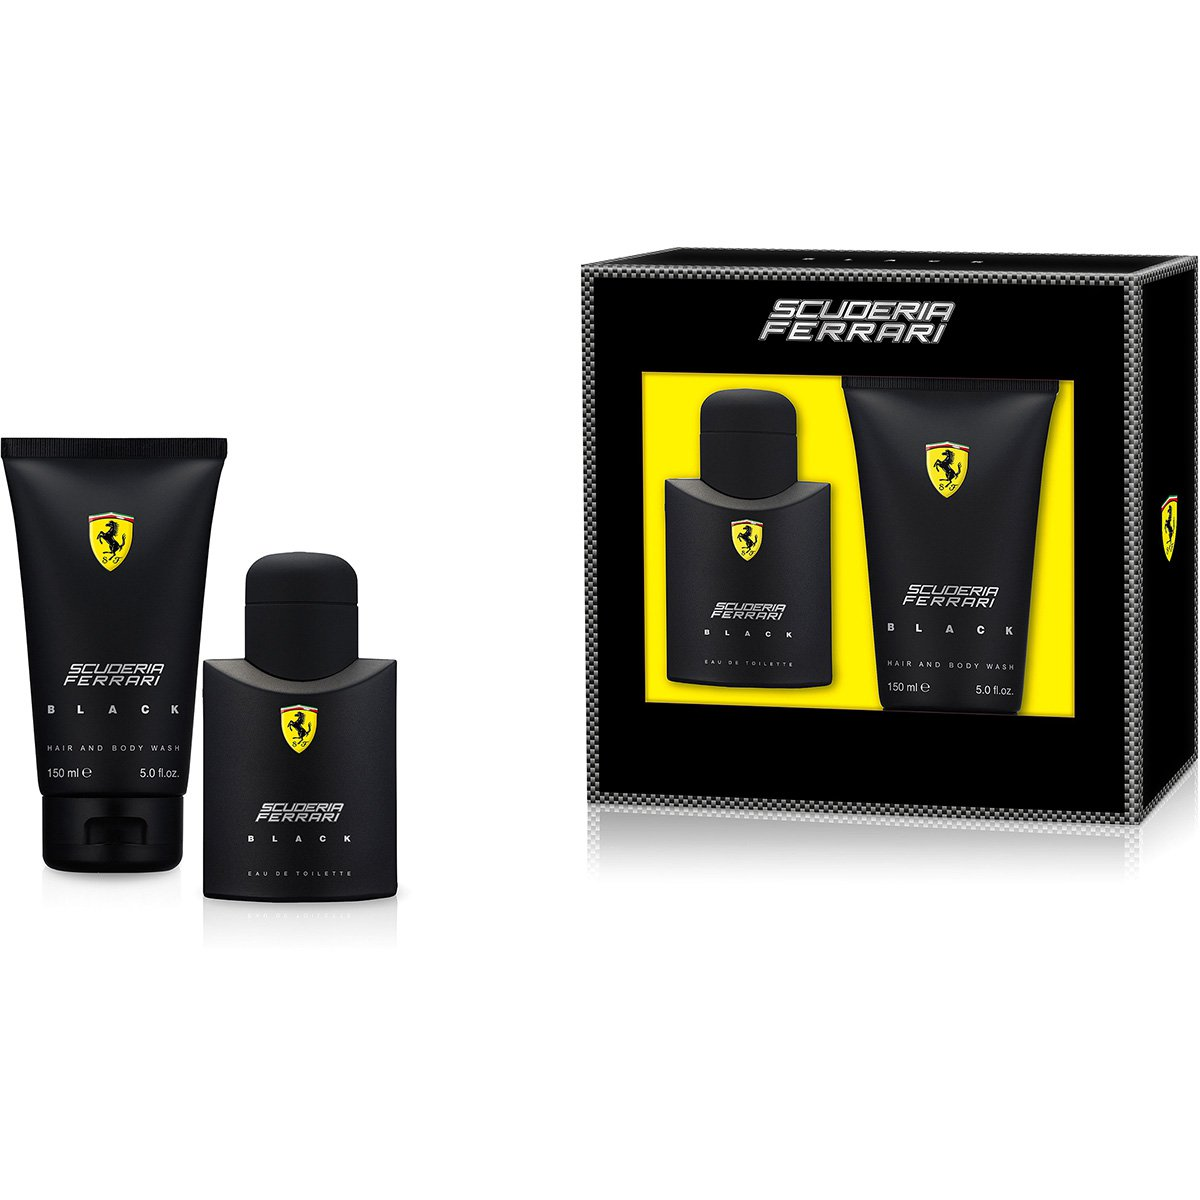 85b17d3e9 Ferrari Kit Perfume Masculino Black EDT 75ml + Shower Gel 150ml - Compre  Agora